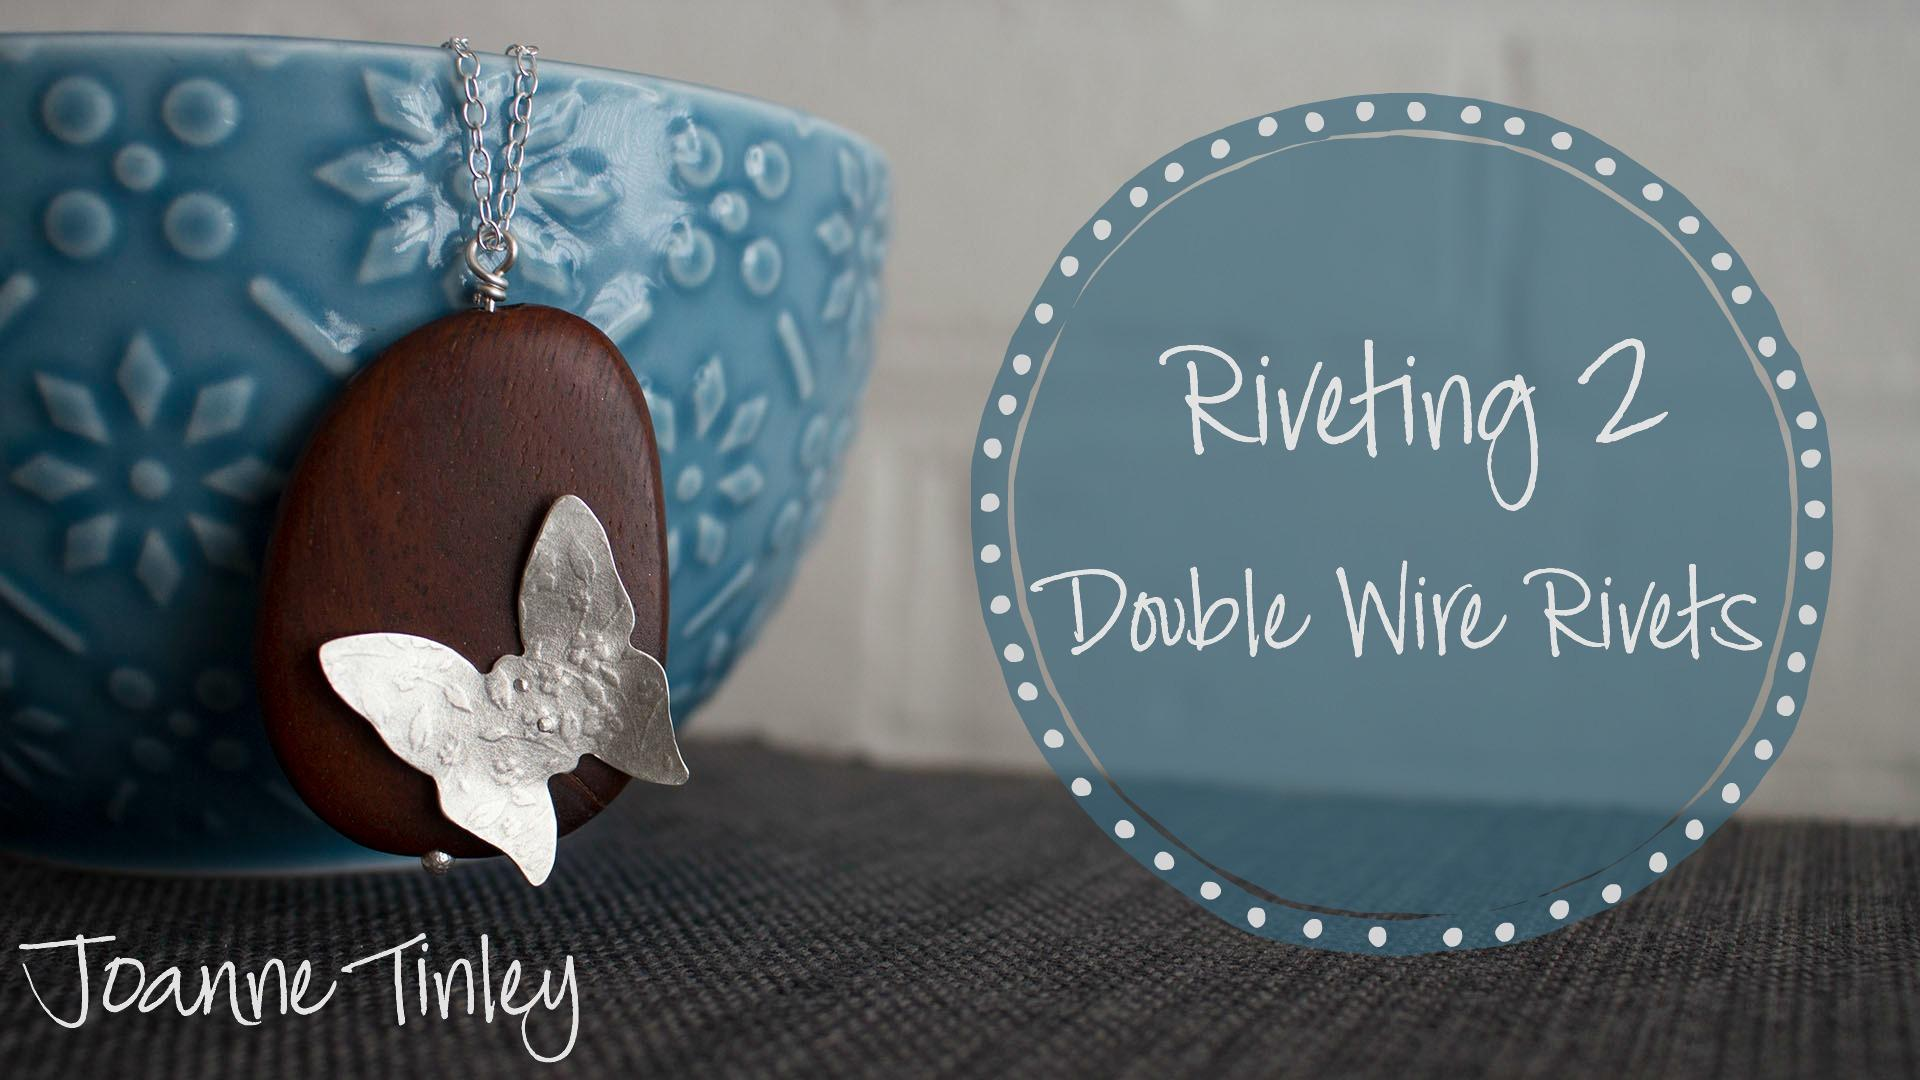 Riveting Part 2 - Double Wire Rivets | Joanne Tinley | Skillshare